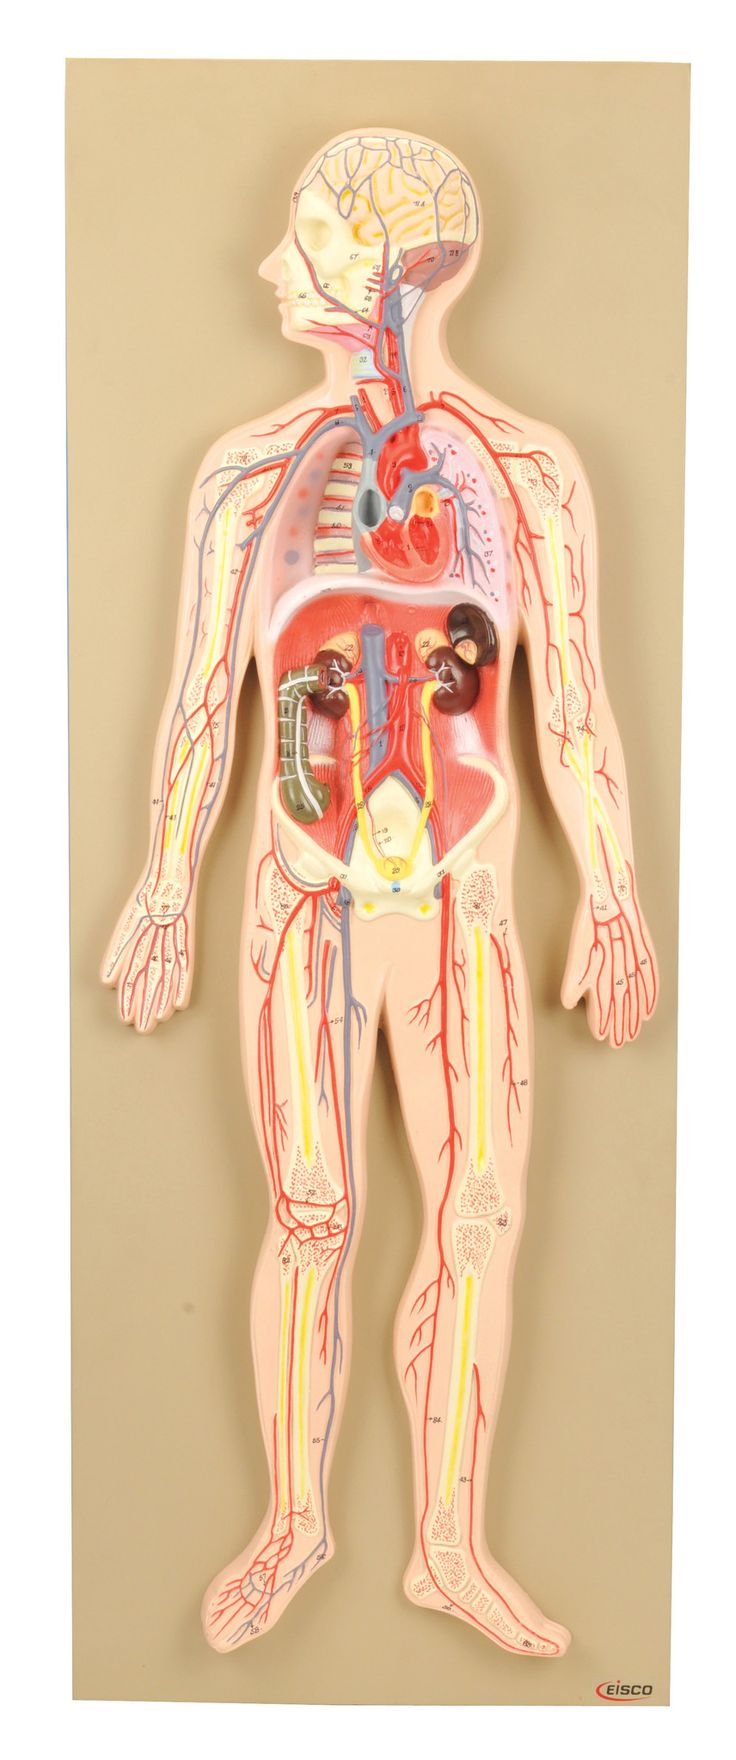 25 best Human Body Systems images on Pinterest   Human anatomy ...